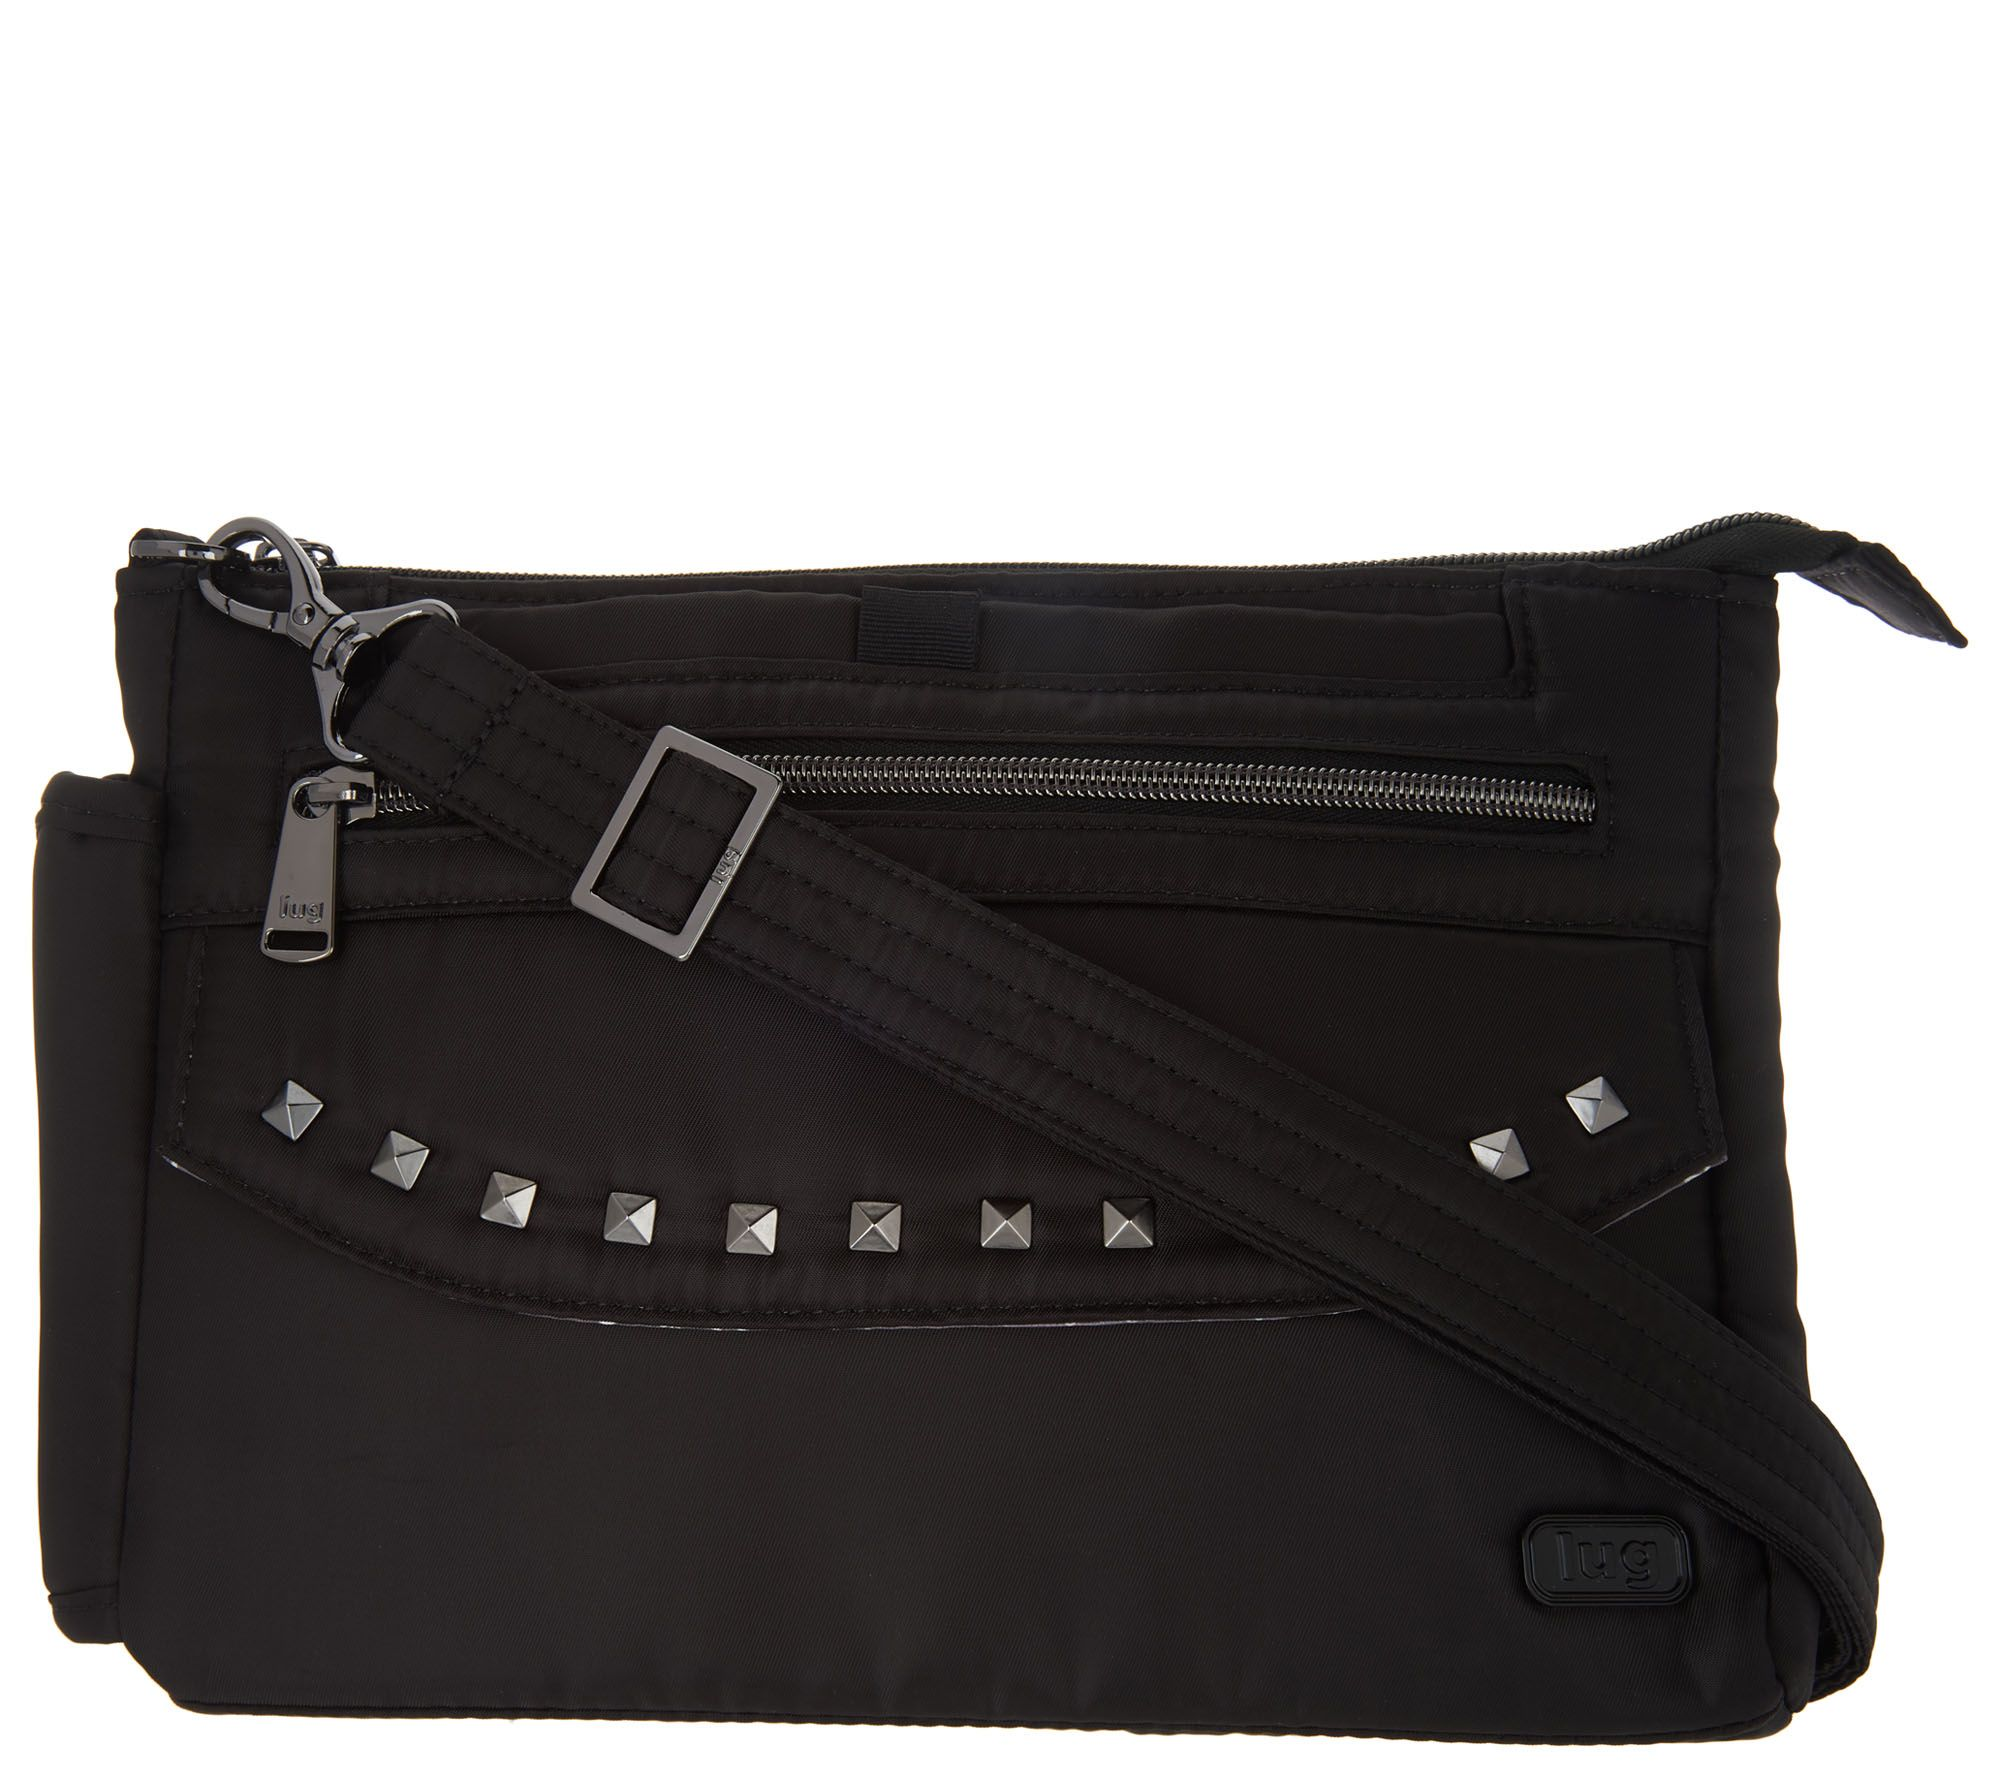 14cb940193cd Lug Studded Crossbody Bag - Pacer - Page 1 — QVC.com